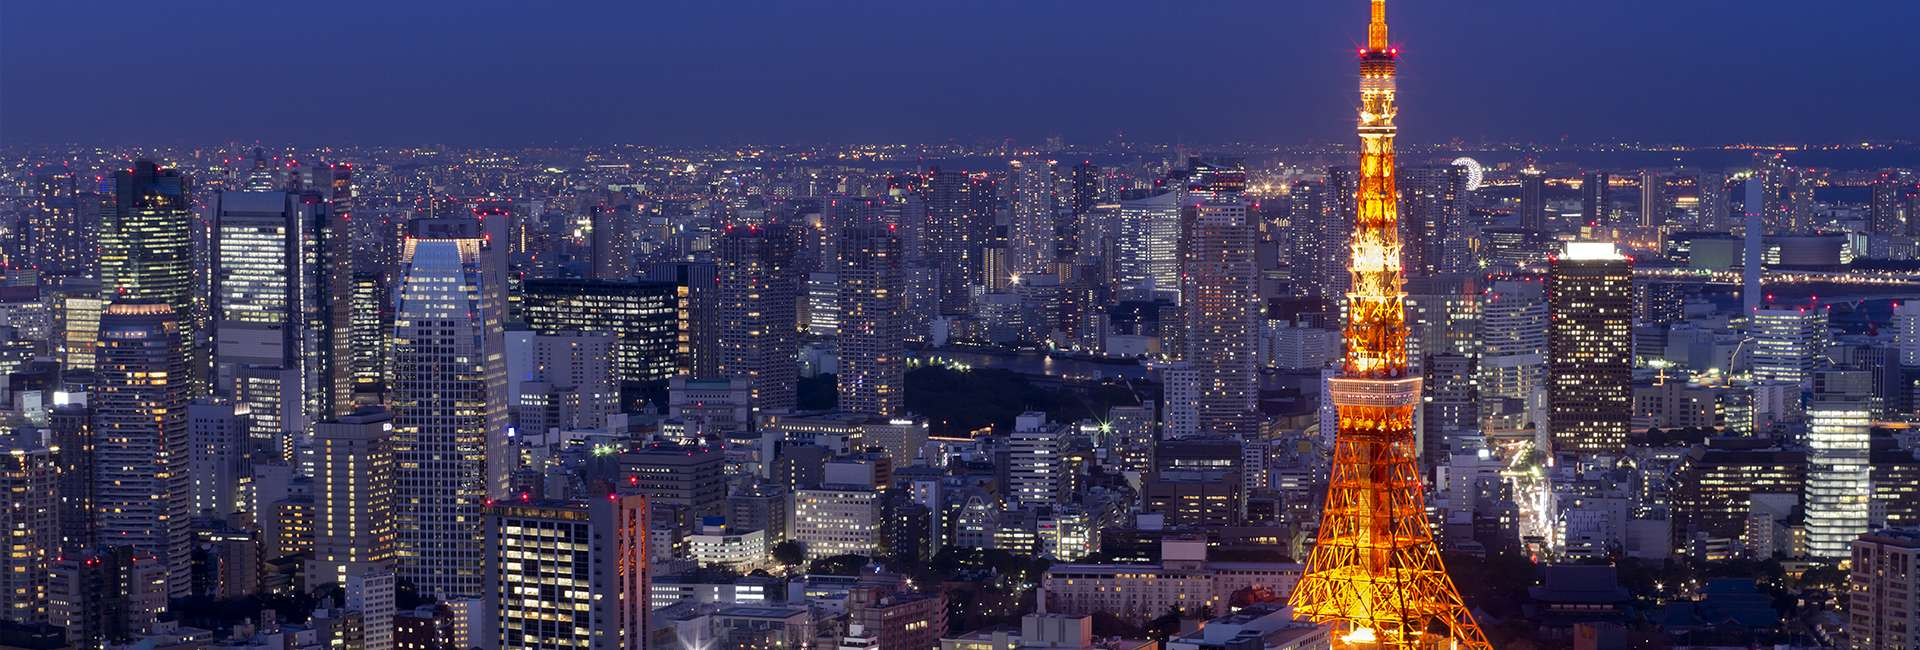 Tokyo the nuit